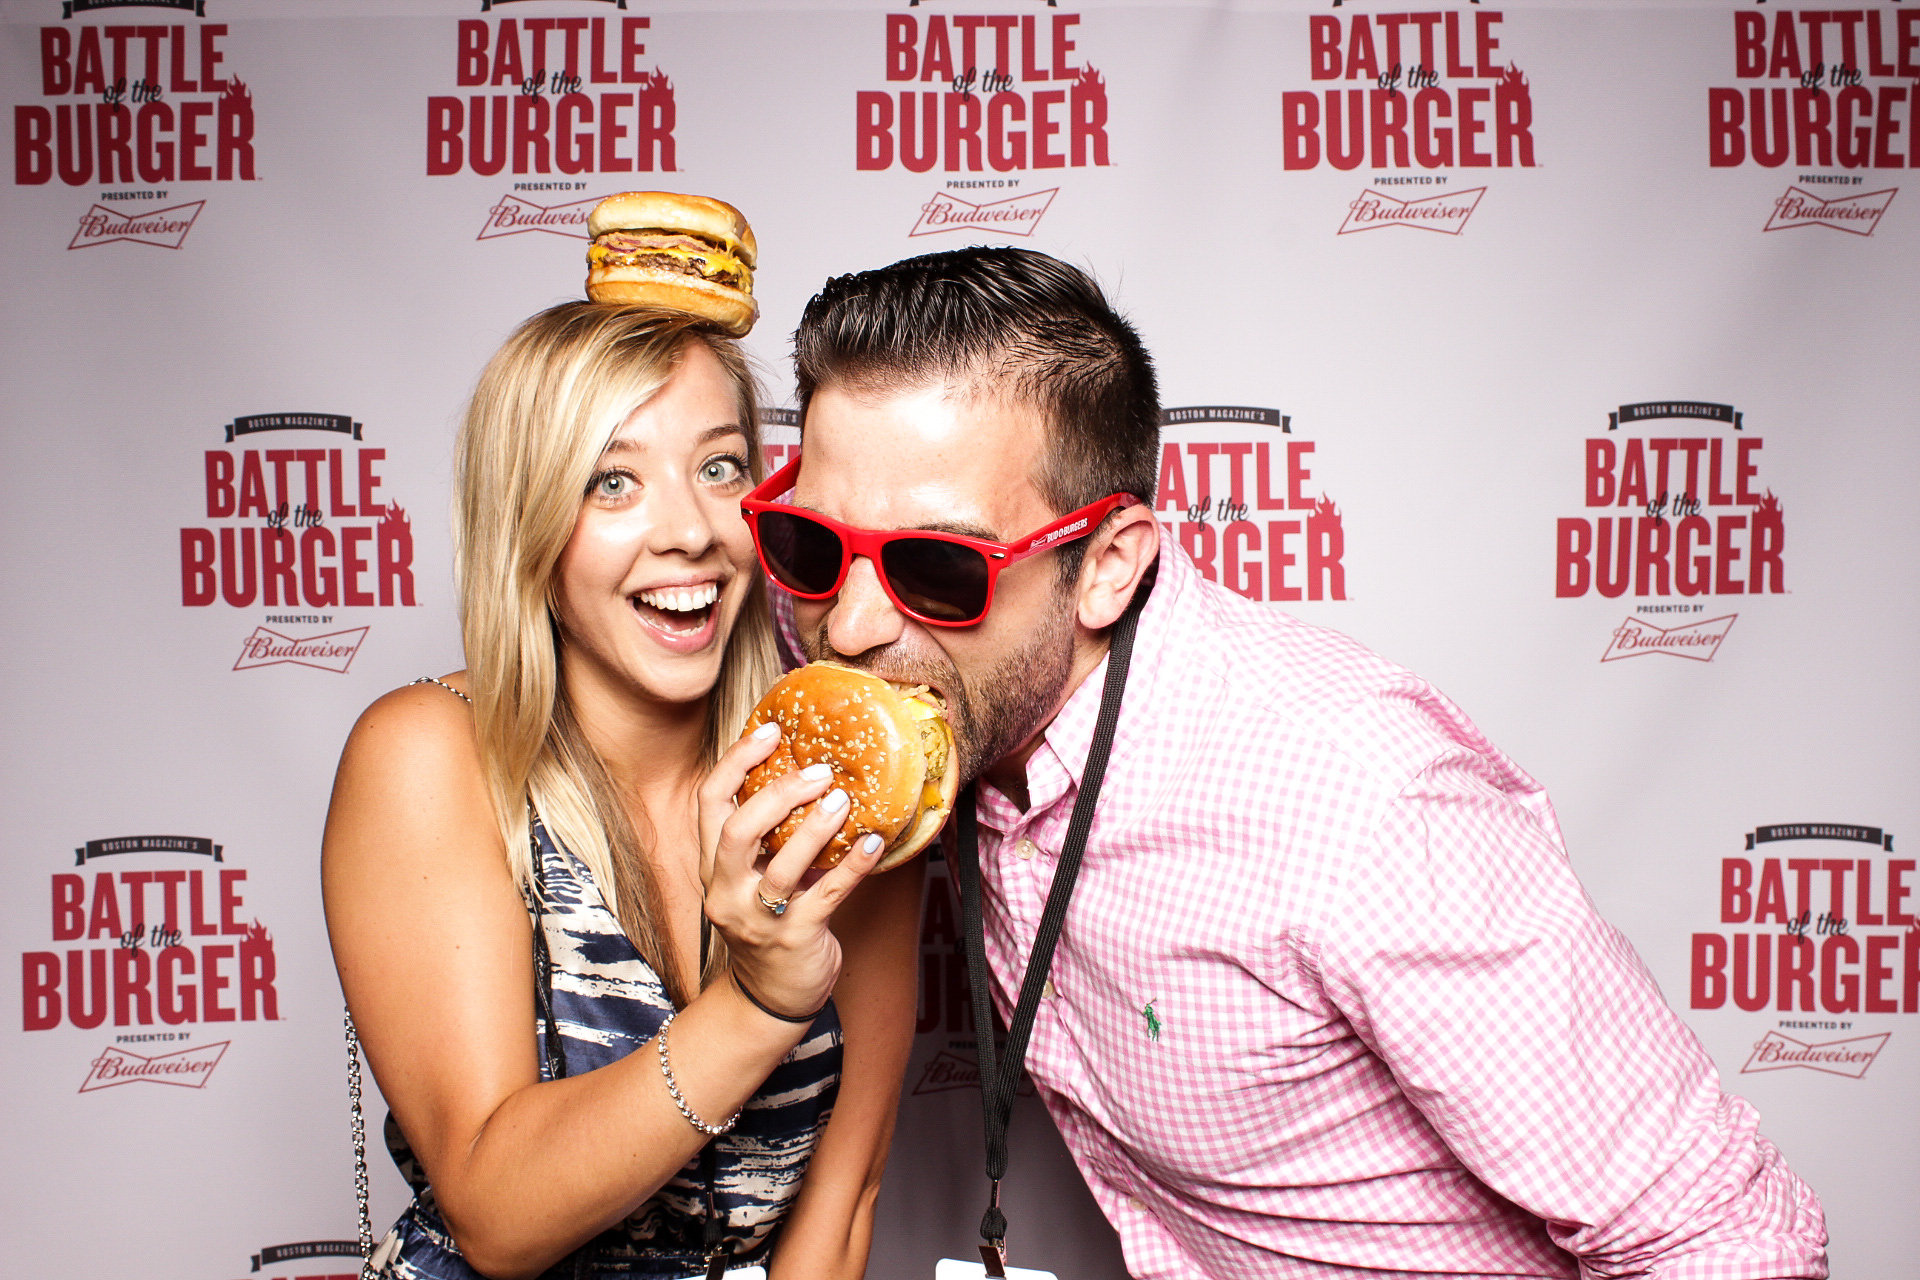 Boston Photo Booth | Photo Booth Rental Boston | The Danger Booth